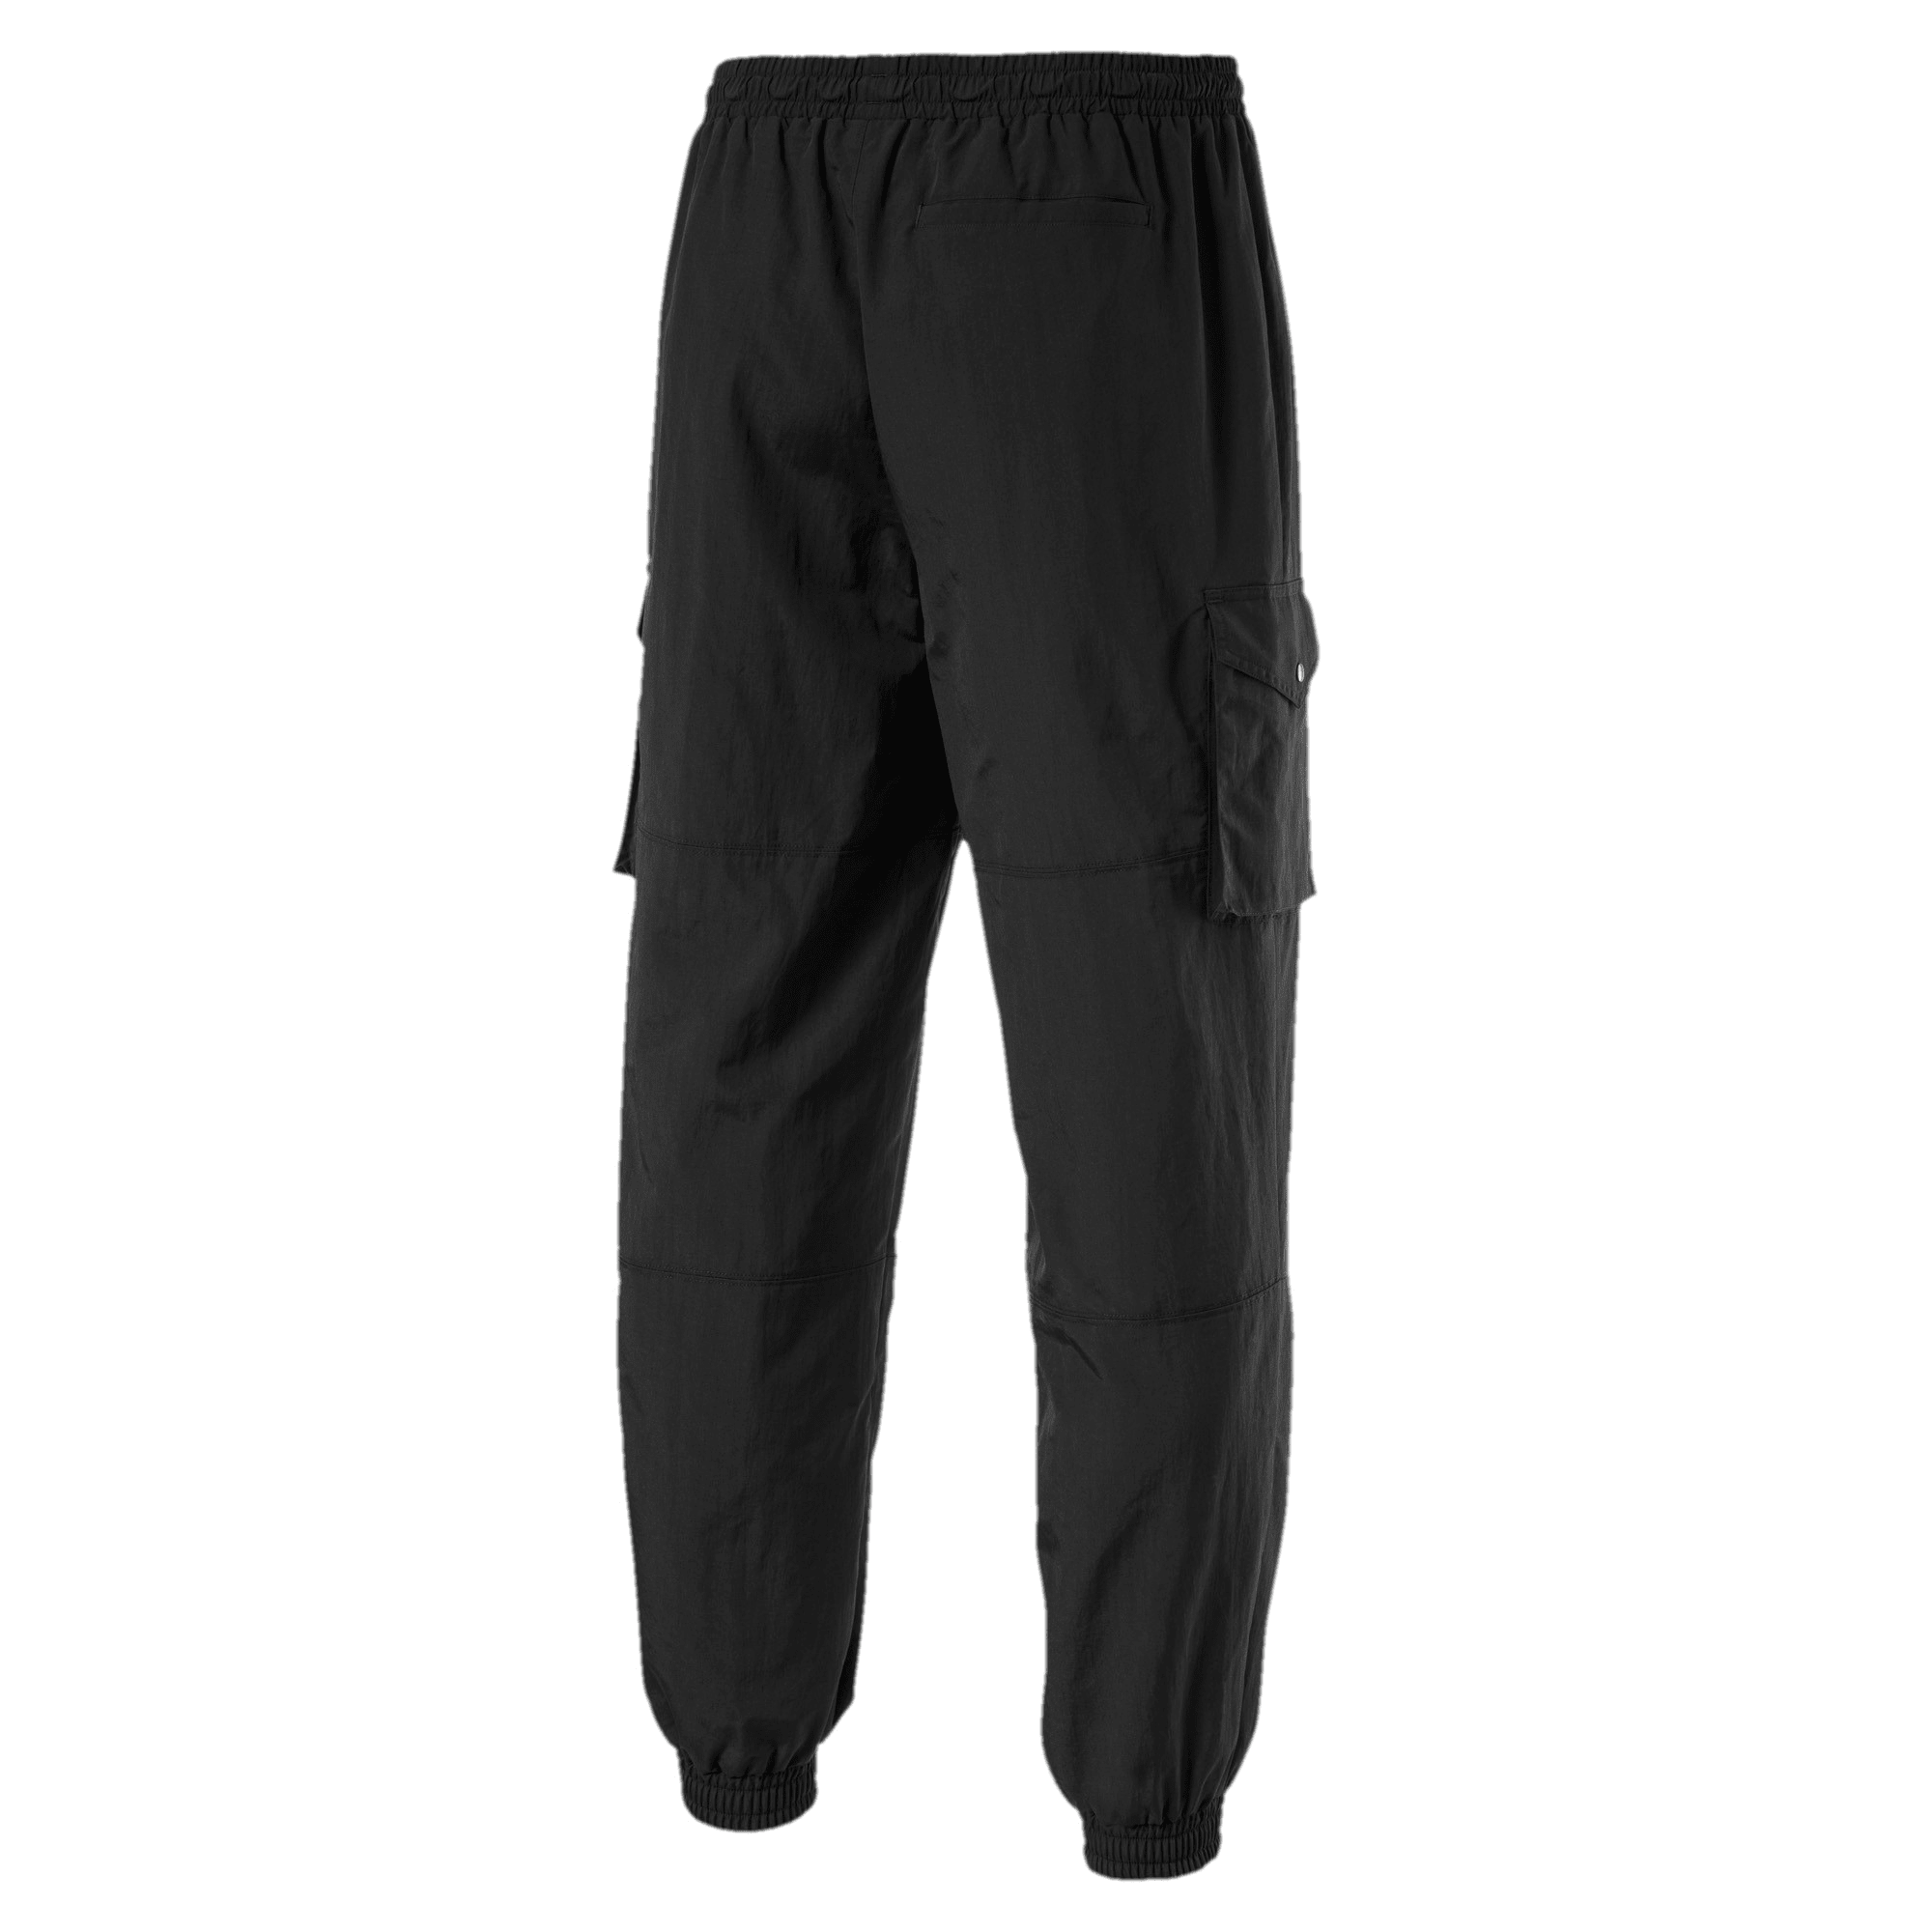 Thumbnail 2 of Sports Fashion Woven Men's Sweatpants, Puma Black, medium